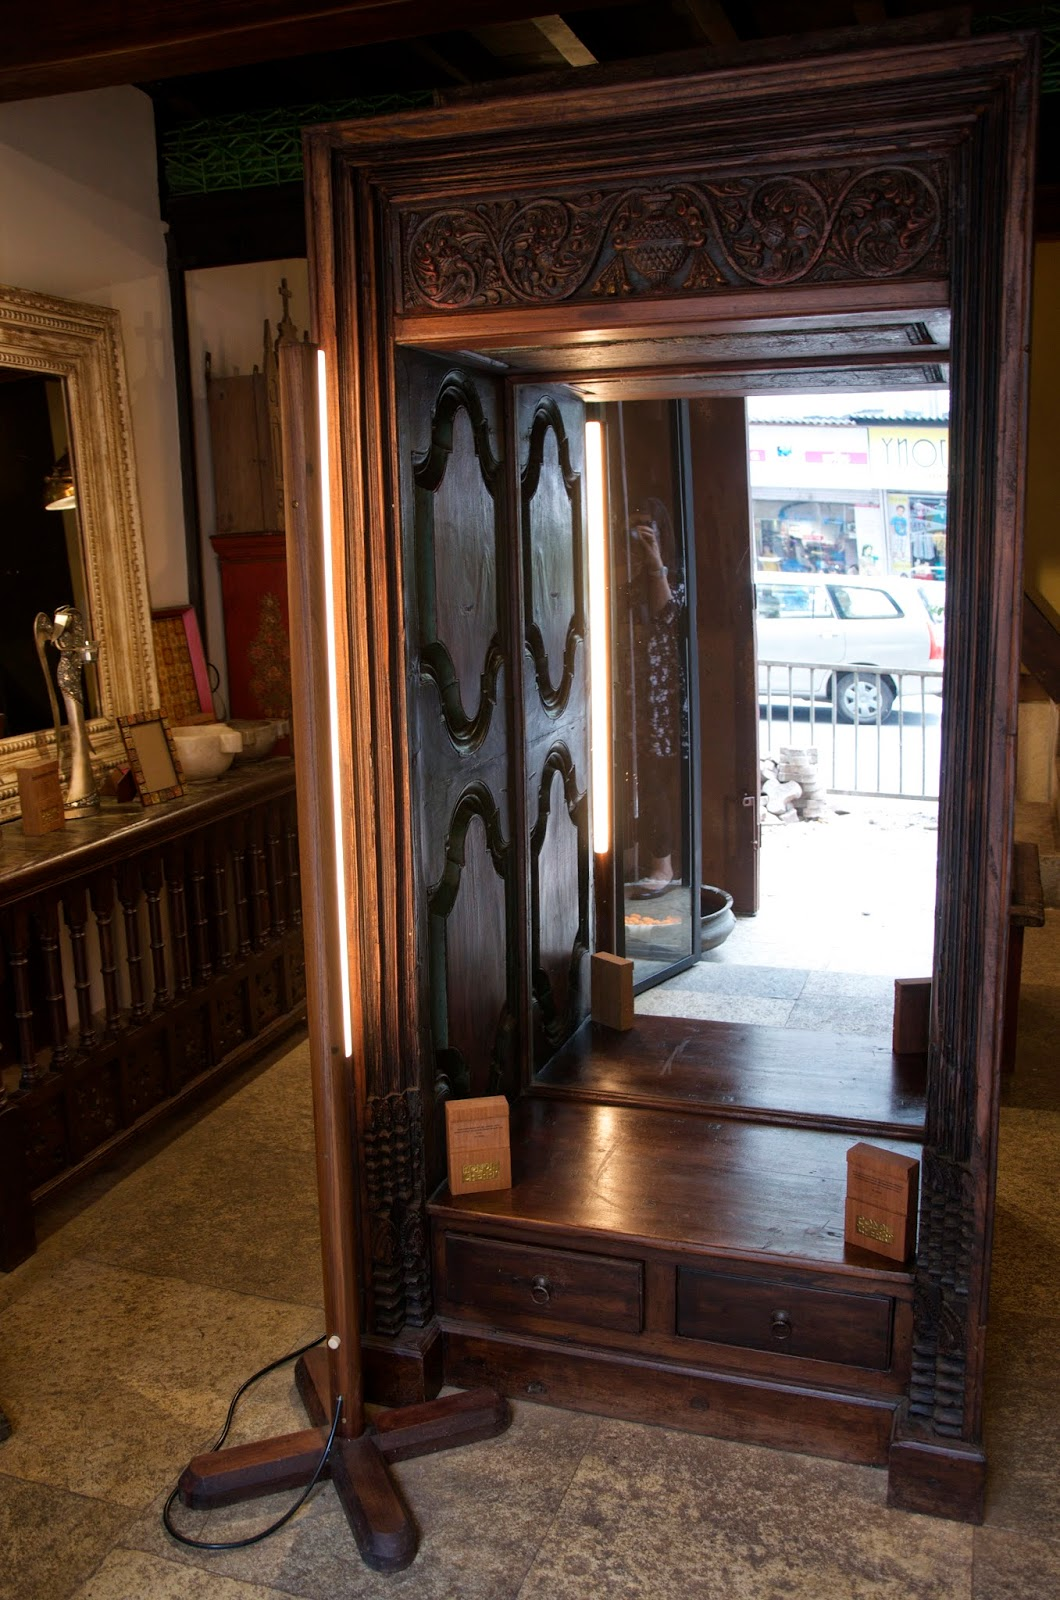 It was hard to take a good picture of this without getting myself in the  frame! It's a vanity mirror console framed with old Victorian, carved Burma  teak ... - BombayJules: Pondicherry (Mumbai) - New Antiques & Interiors Find!